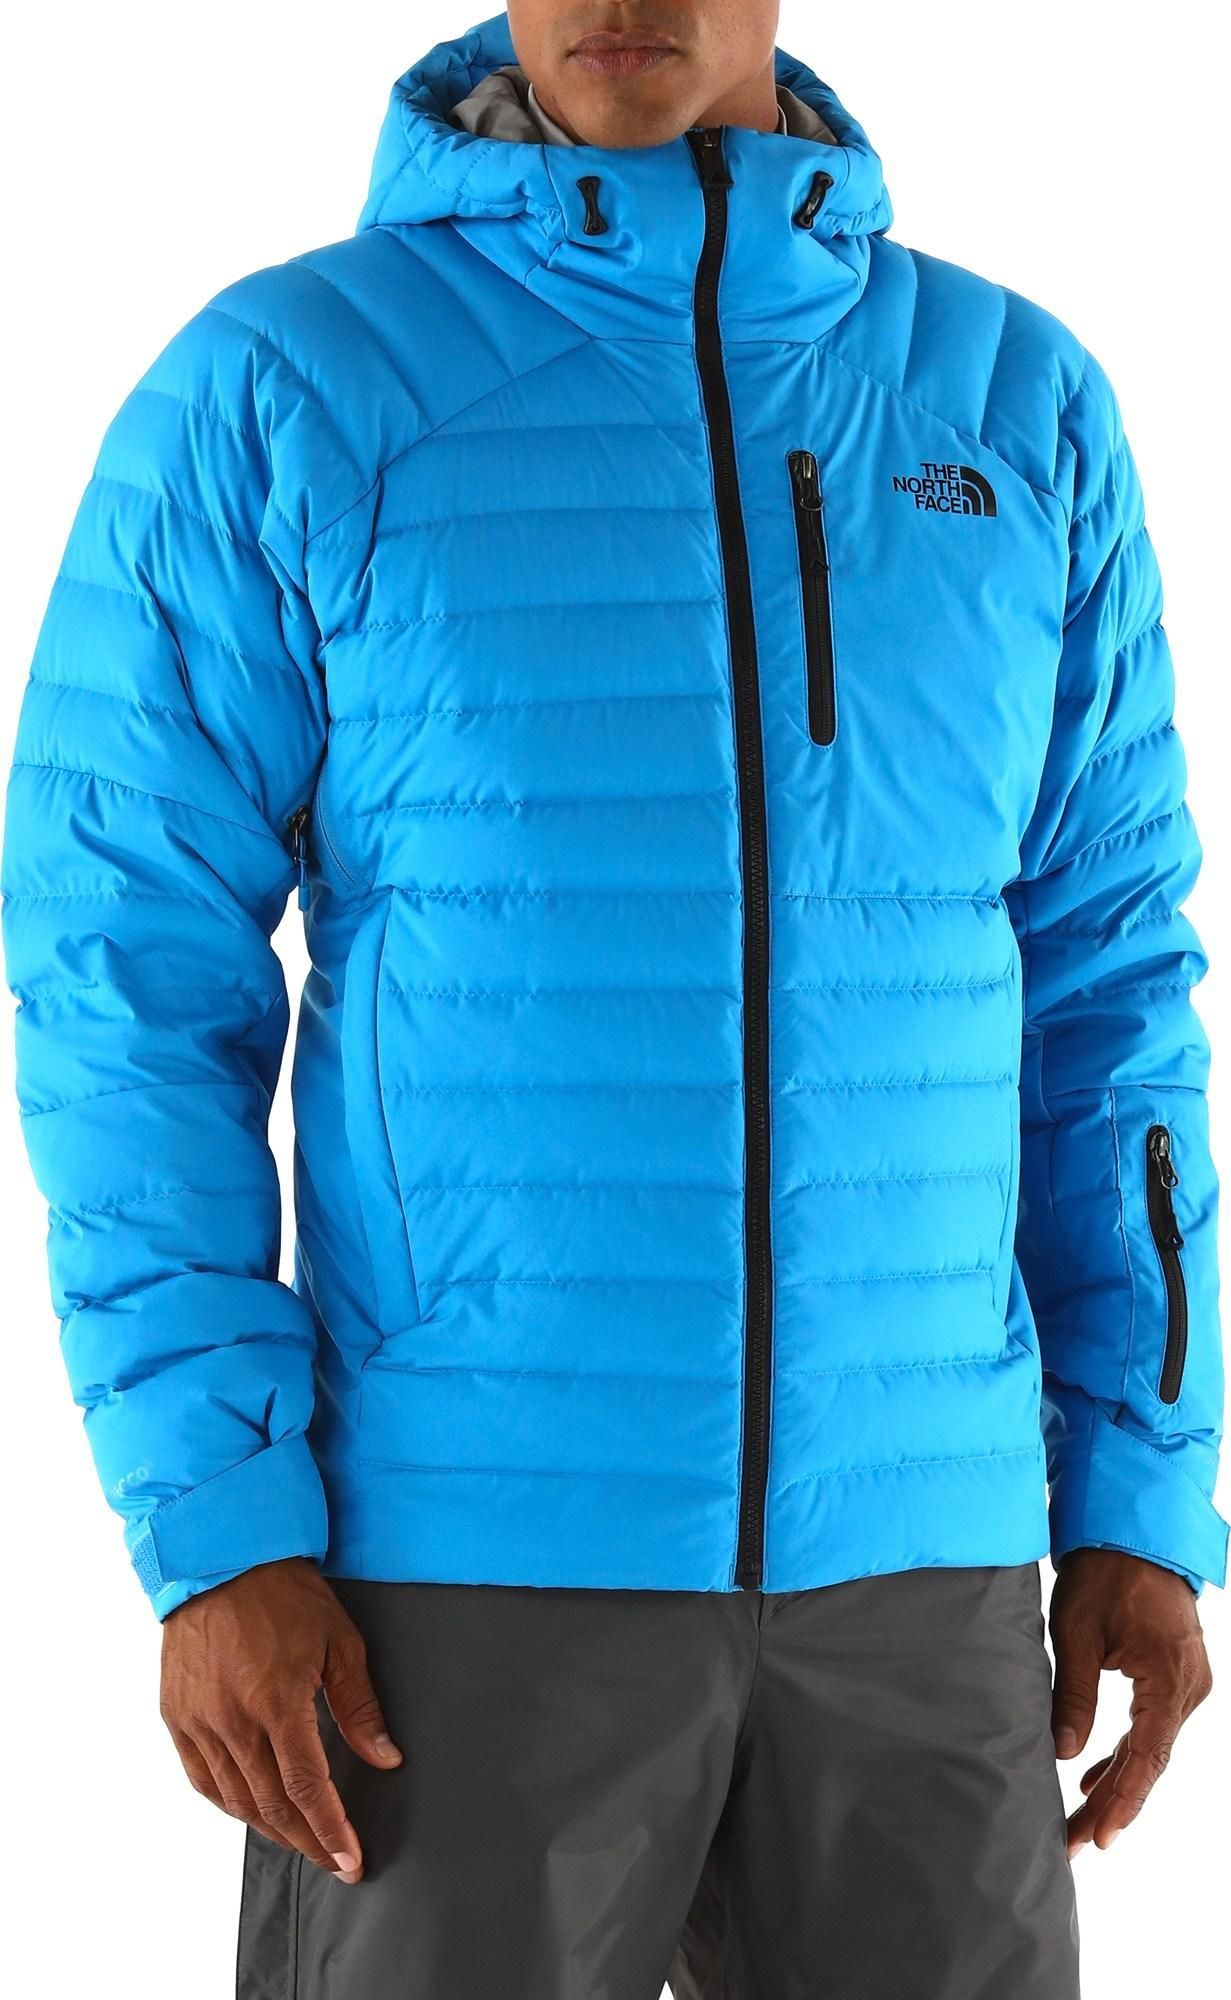 Built for Alaska-level cold, The North Face Point It Down jacket boasts a  Gore WINDSTOPPER® shell and water-resistant 700-fill down.  REIGifts 0ba77de58d9